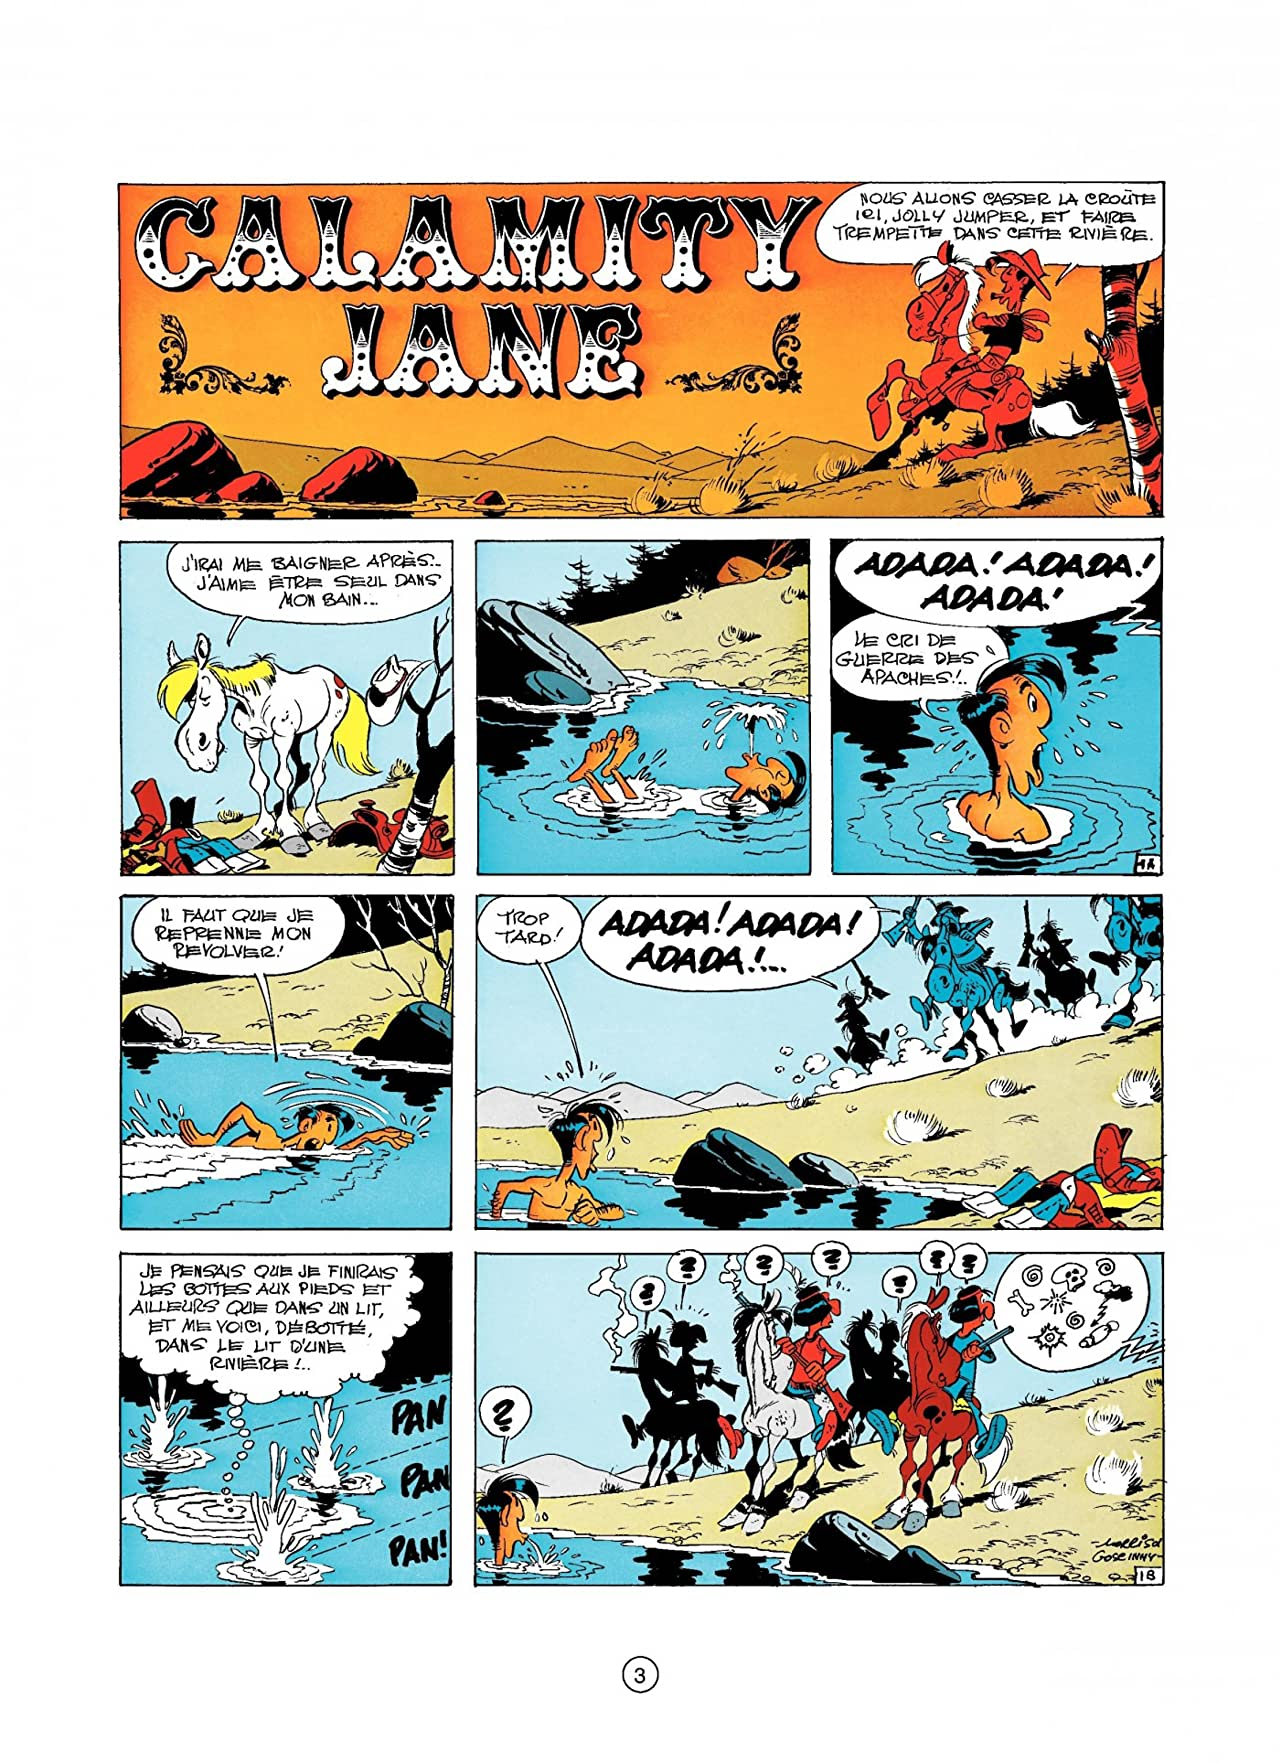 Lucky Luke Vol. 30: CALAMITY JANE